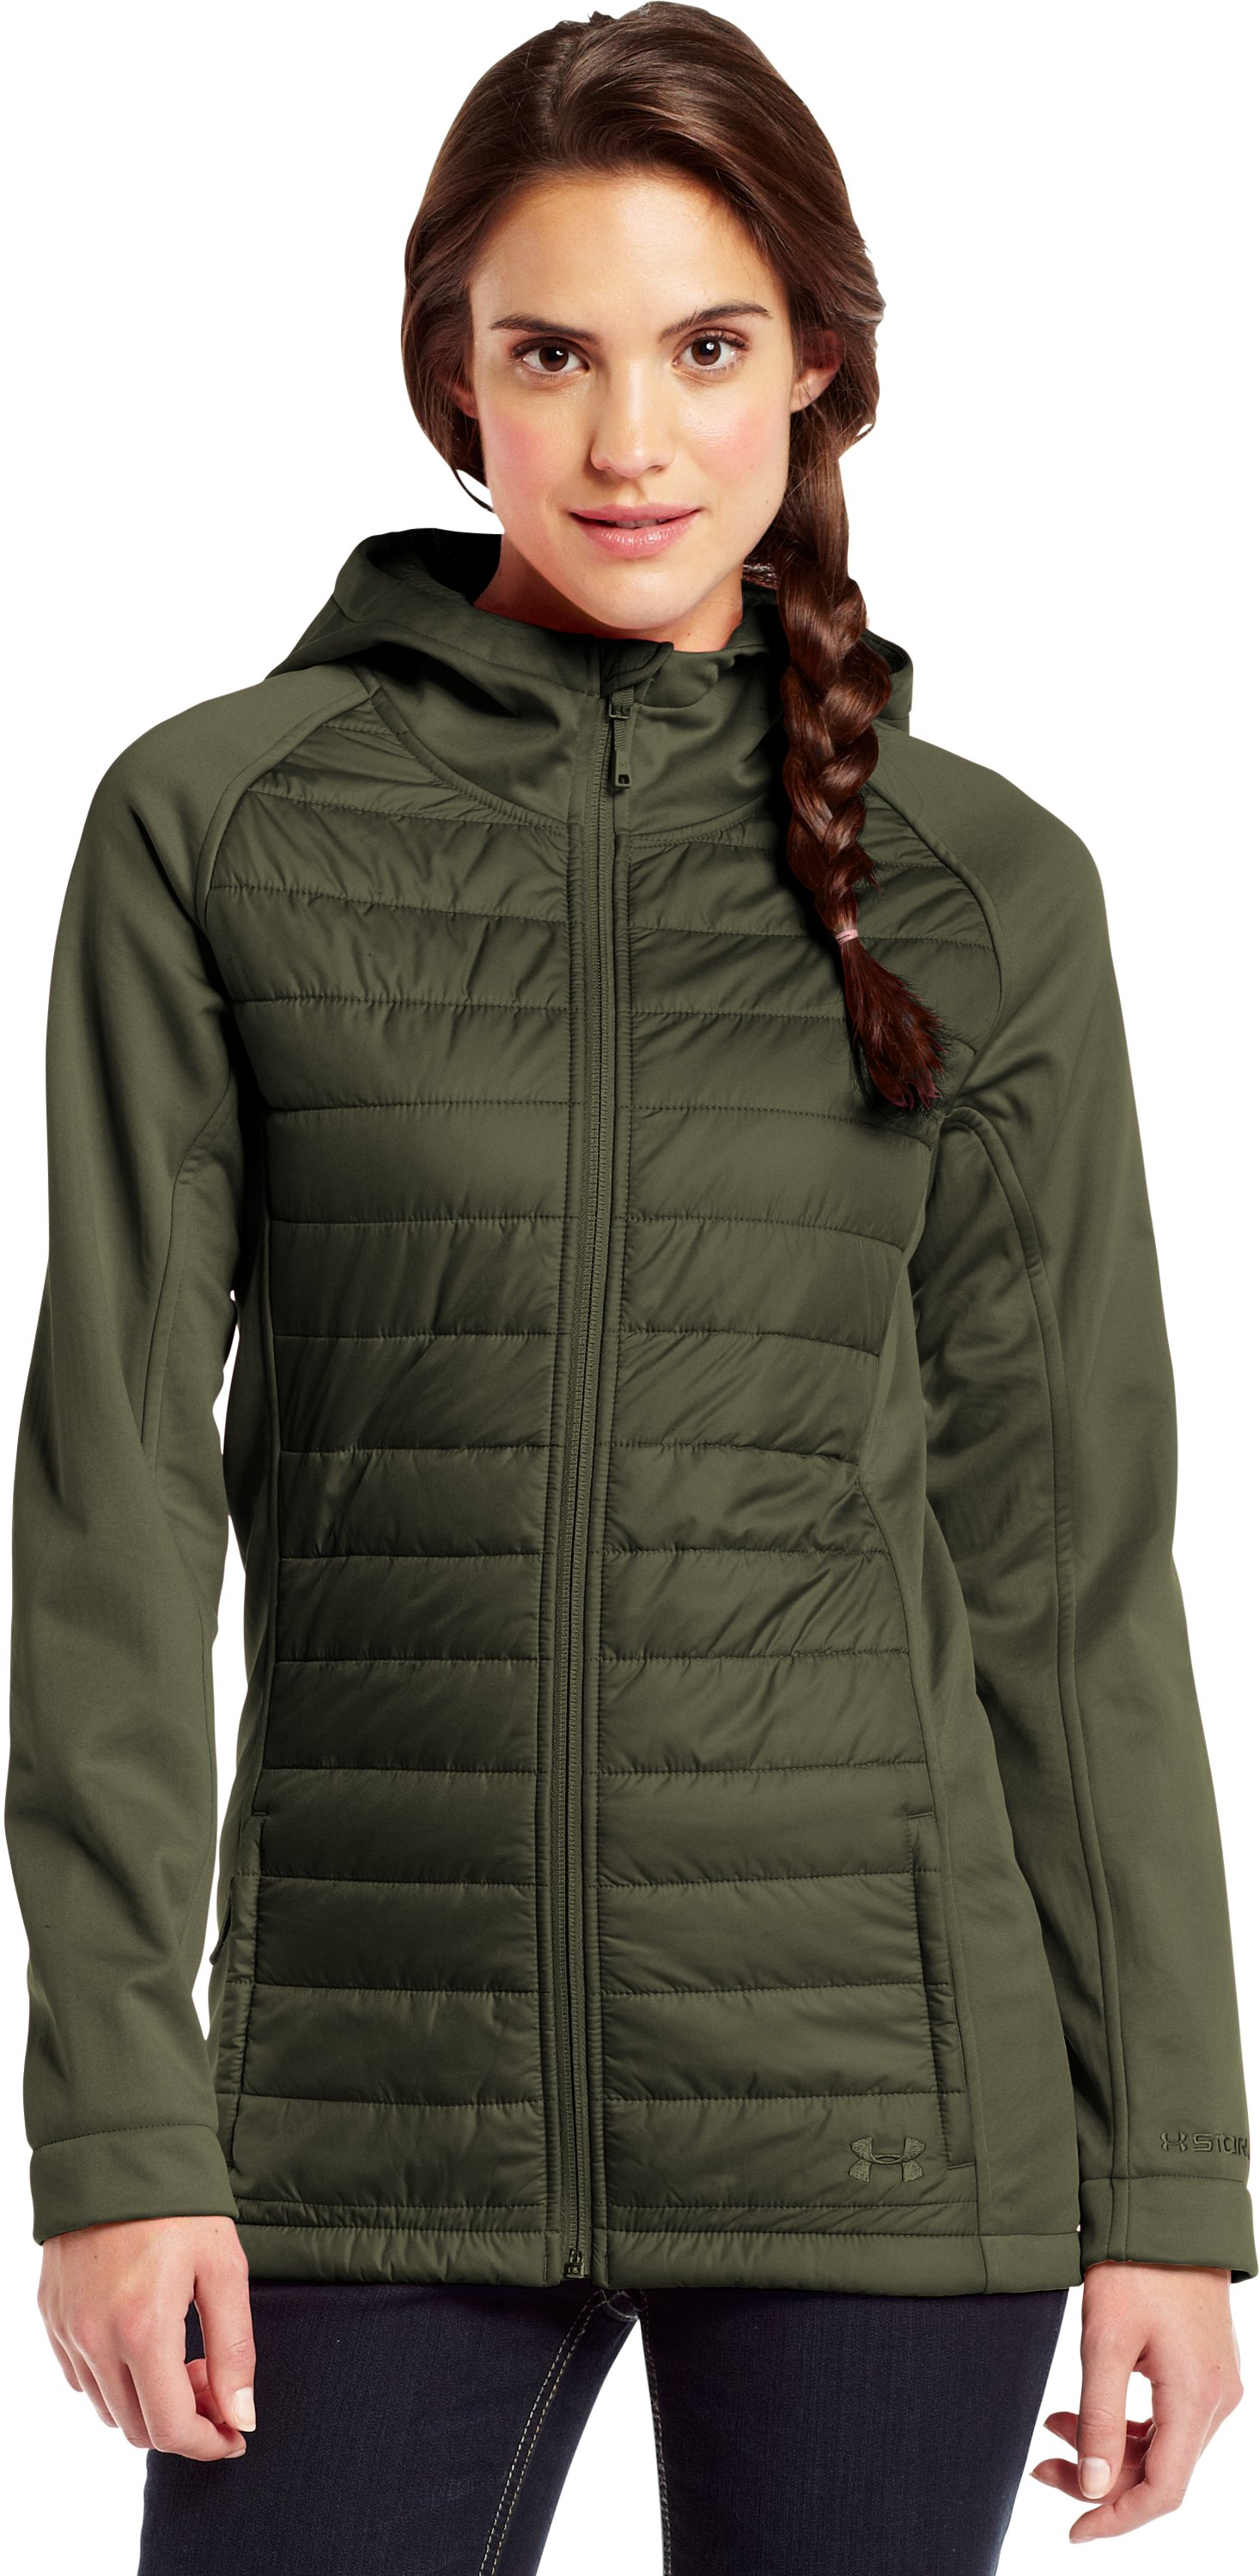 Women's ColdGear® Infrared Werewolf Jacket, GREENHEAD, zoomed image